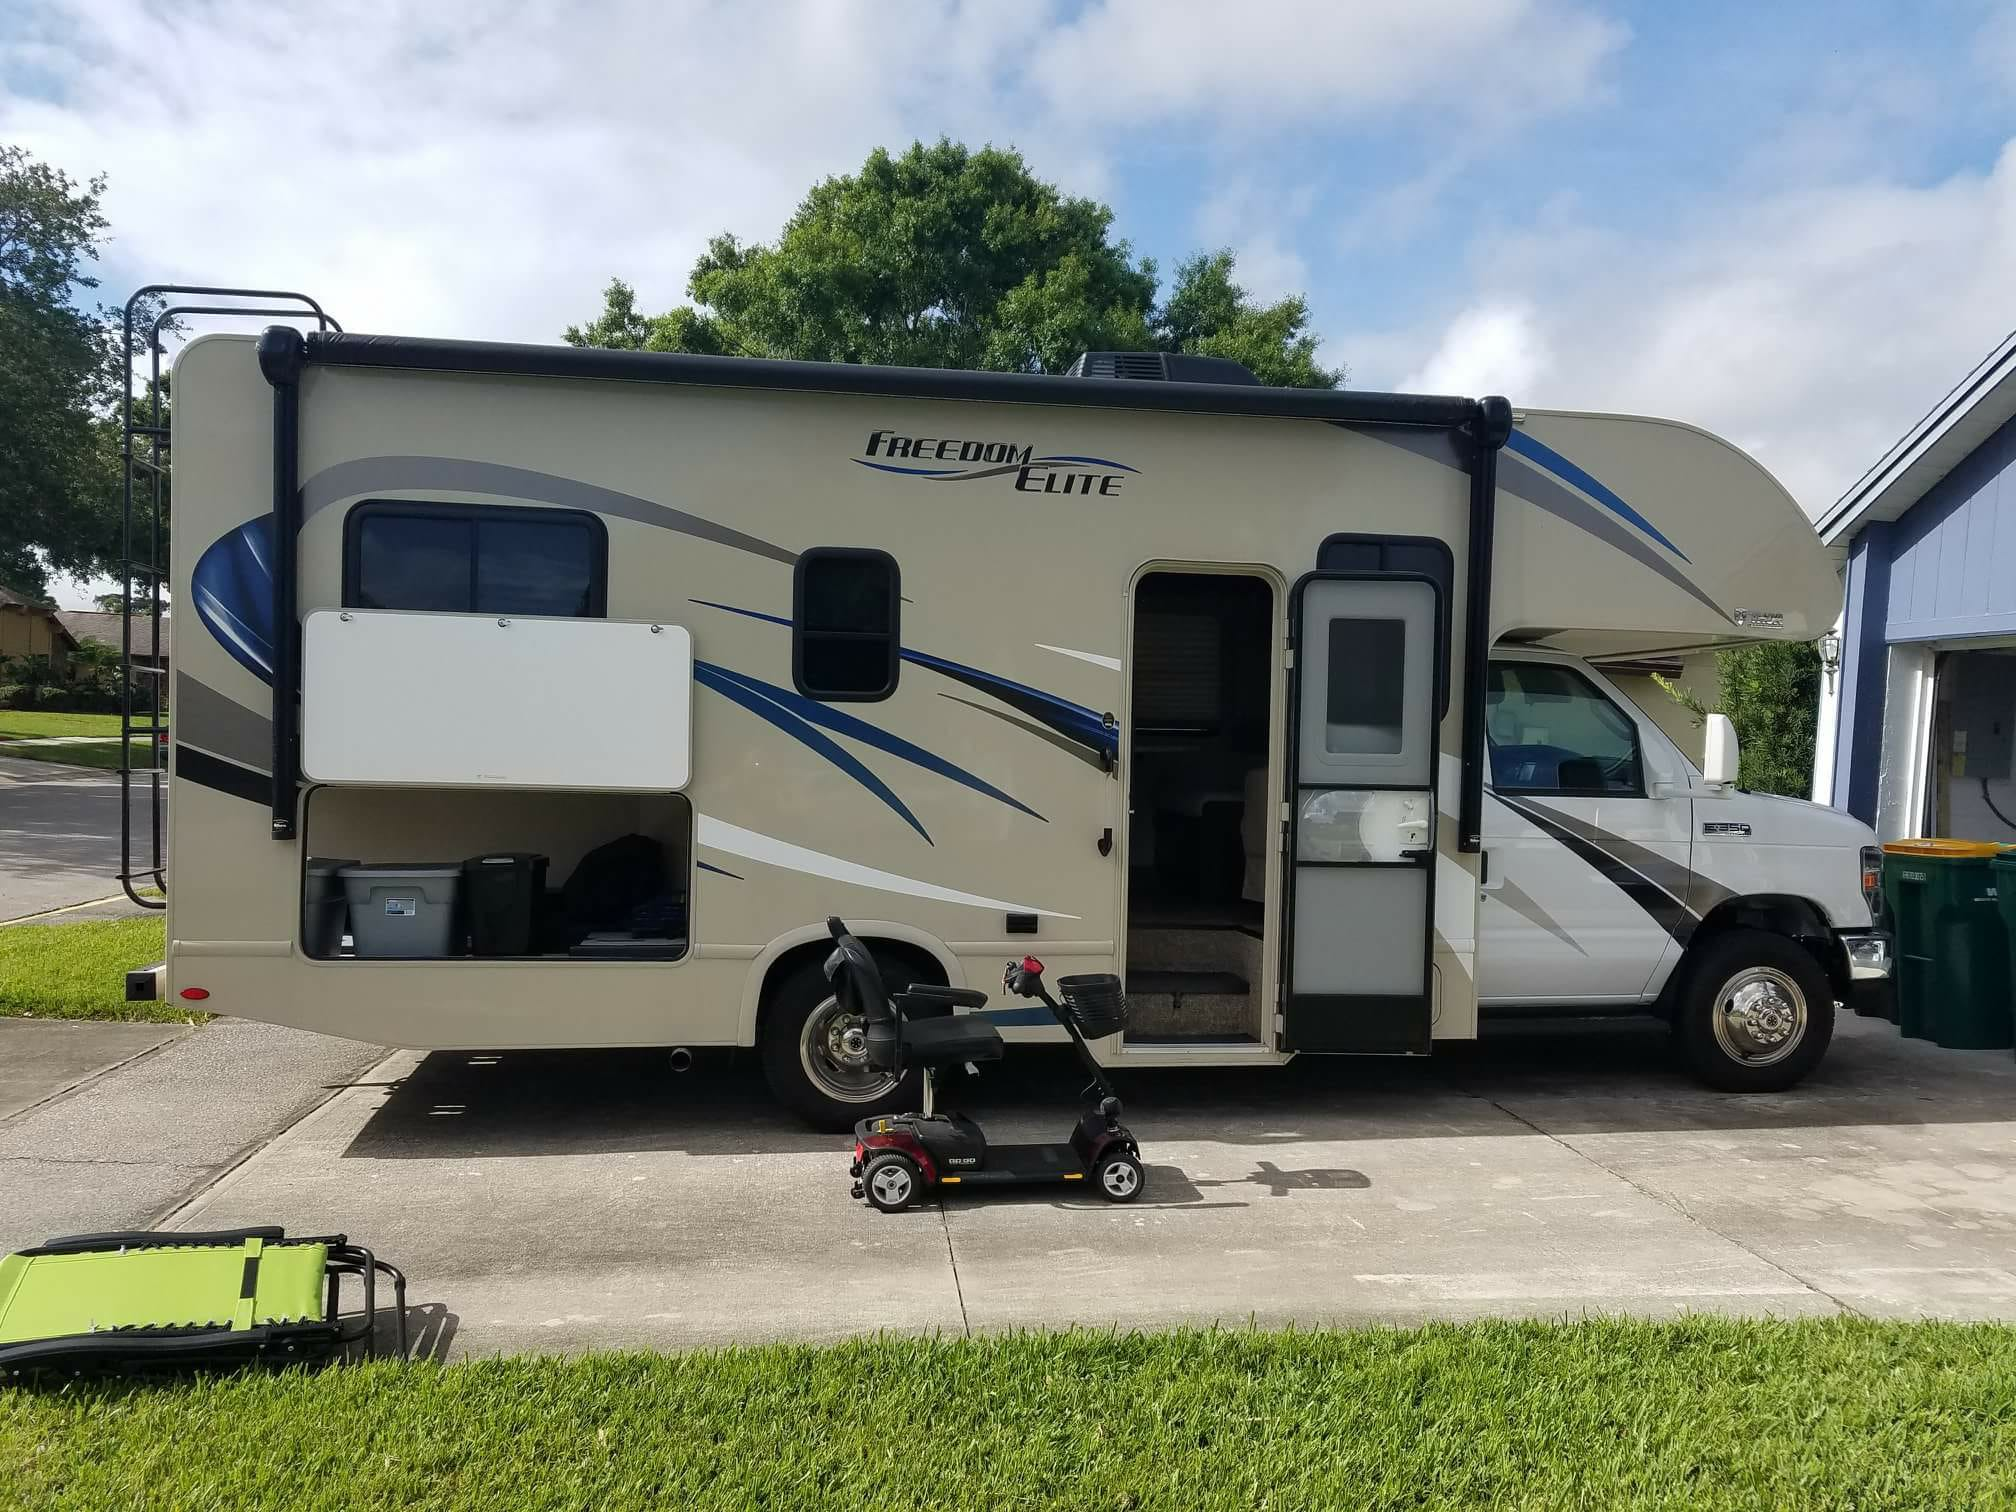 Top 25 Wyandotte County KS RV Rentals and Motorhome Rentals